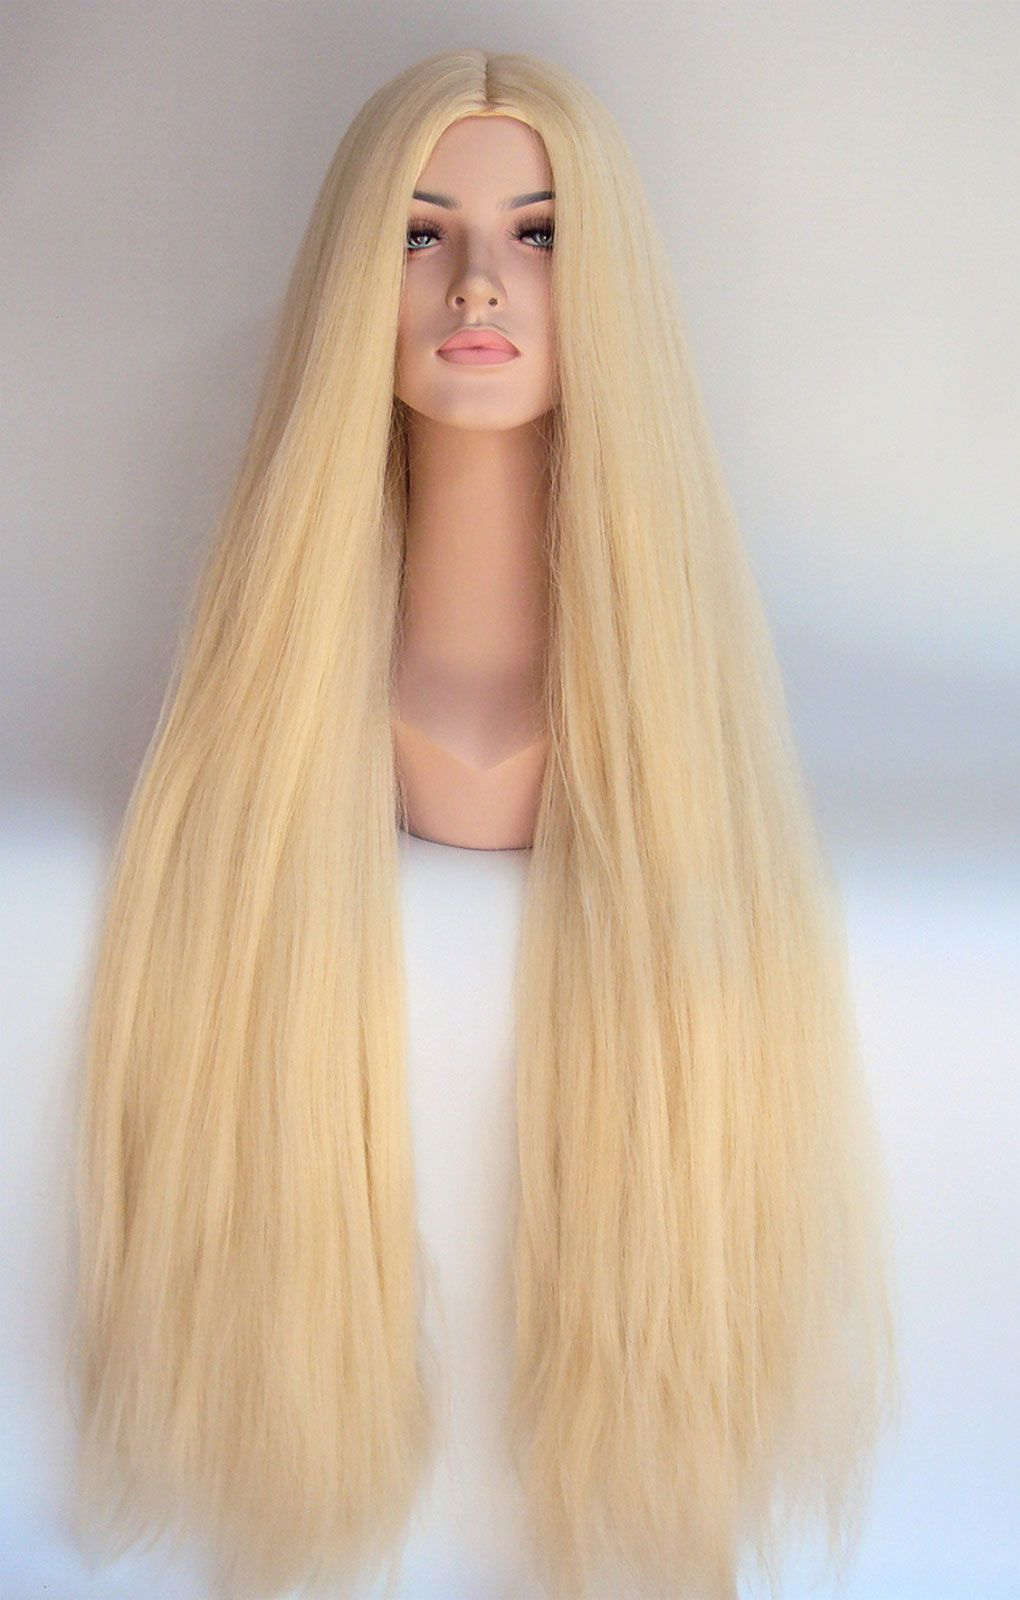 Wavy Platinum Blonde Lace Front Synthetic Wig Lw667f Blonde Lace Front Wigs Wig Hairstyles